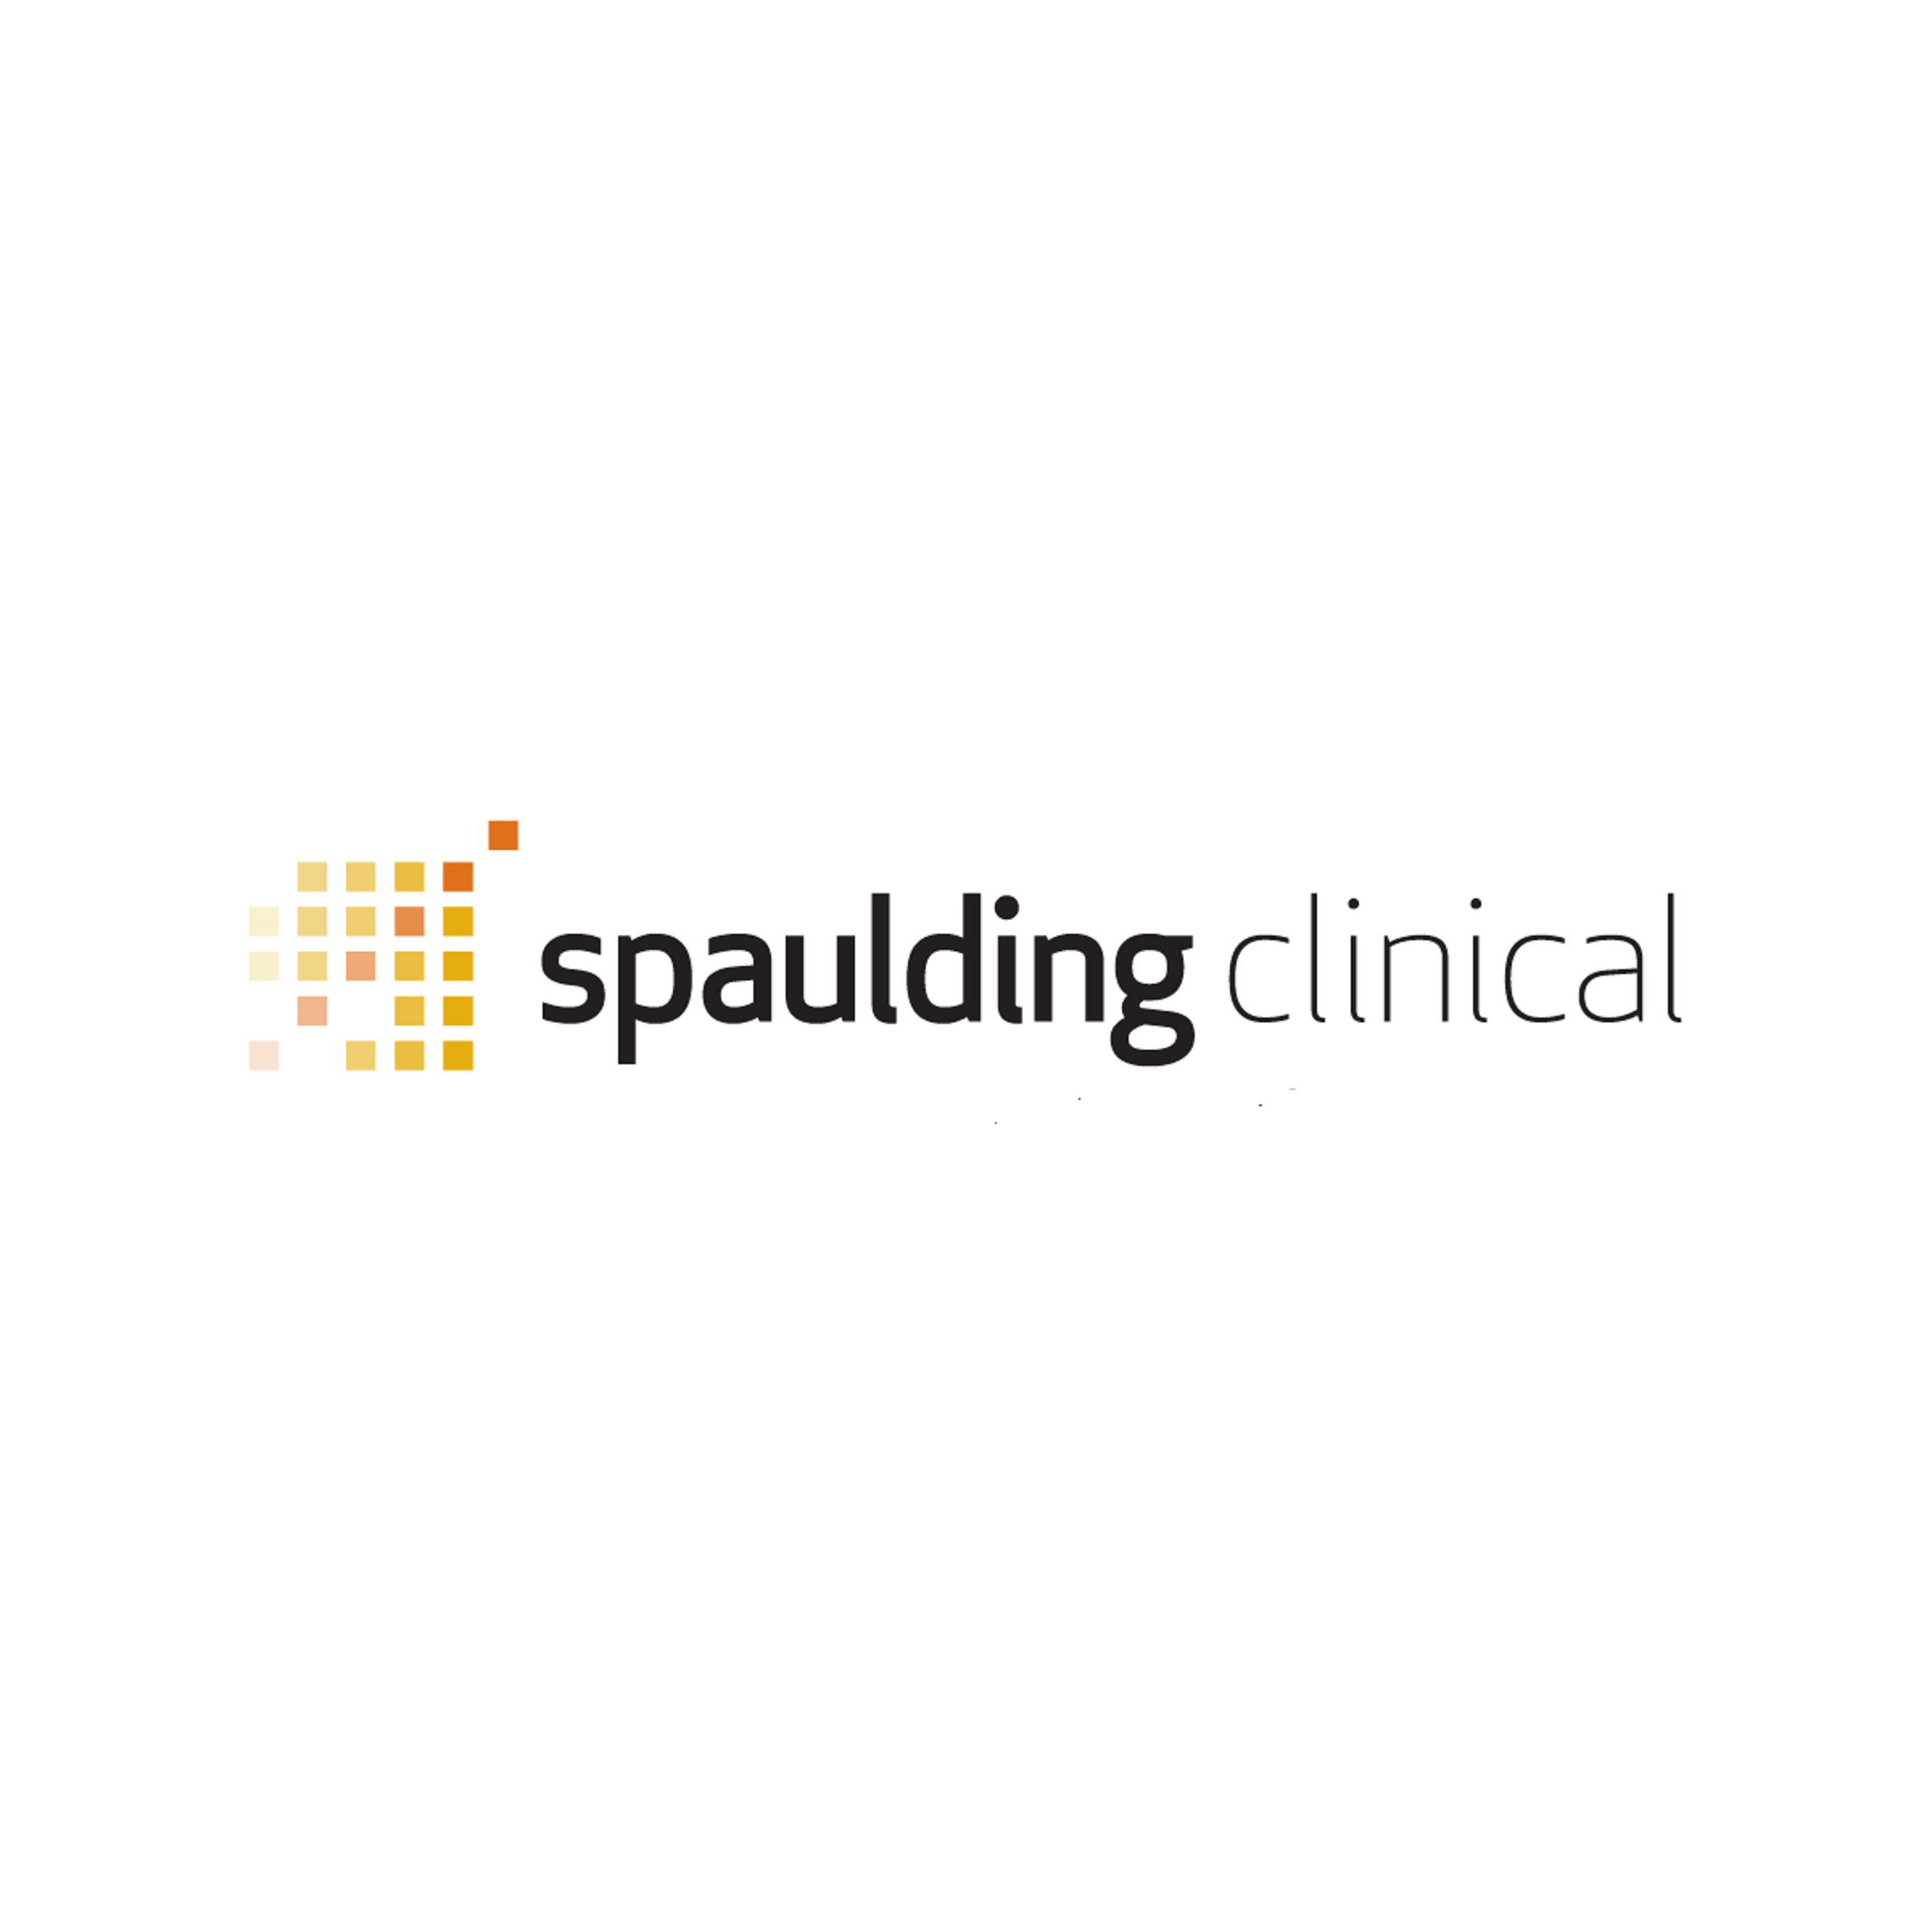 spaulding clinical to showcase first cloud